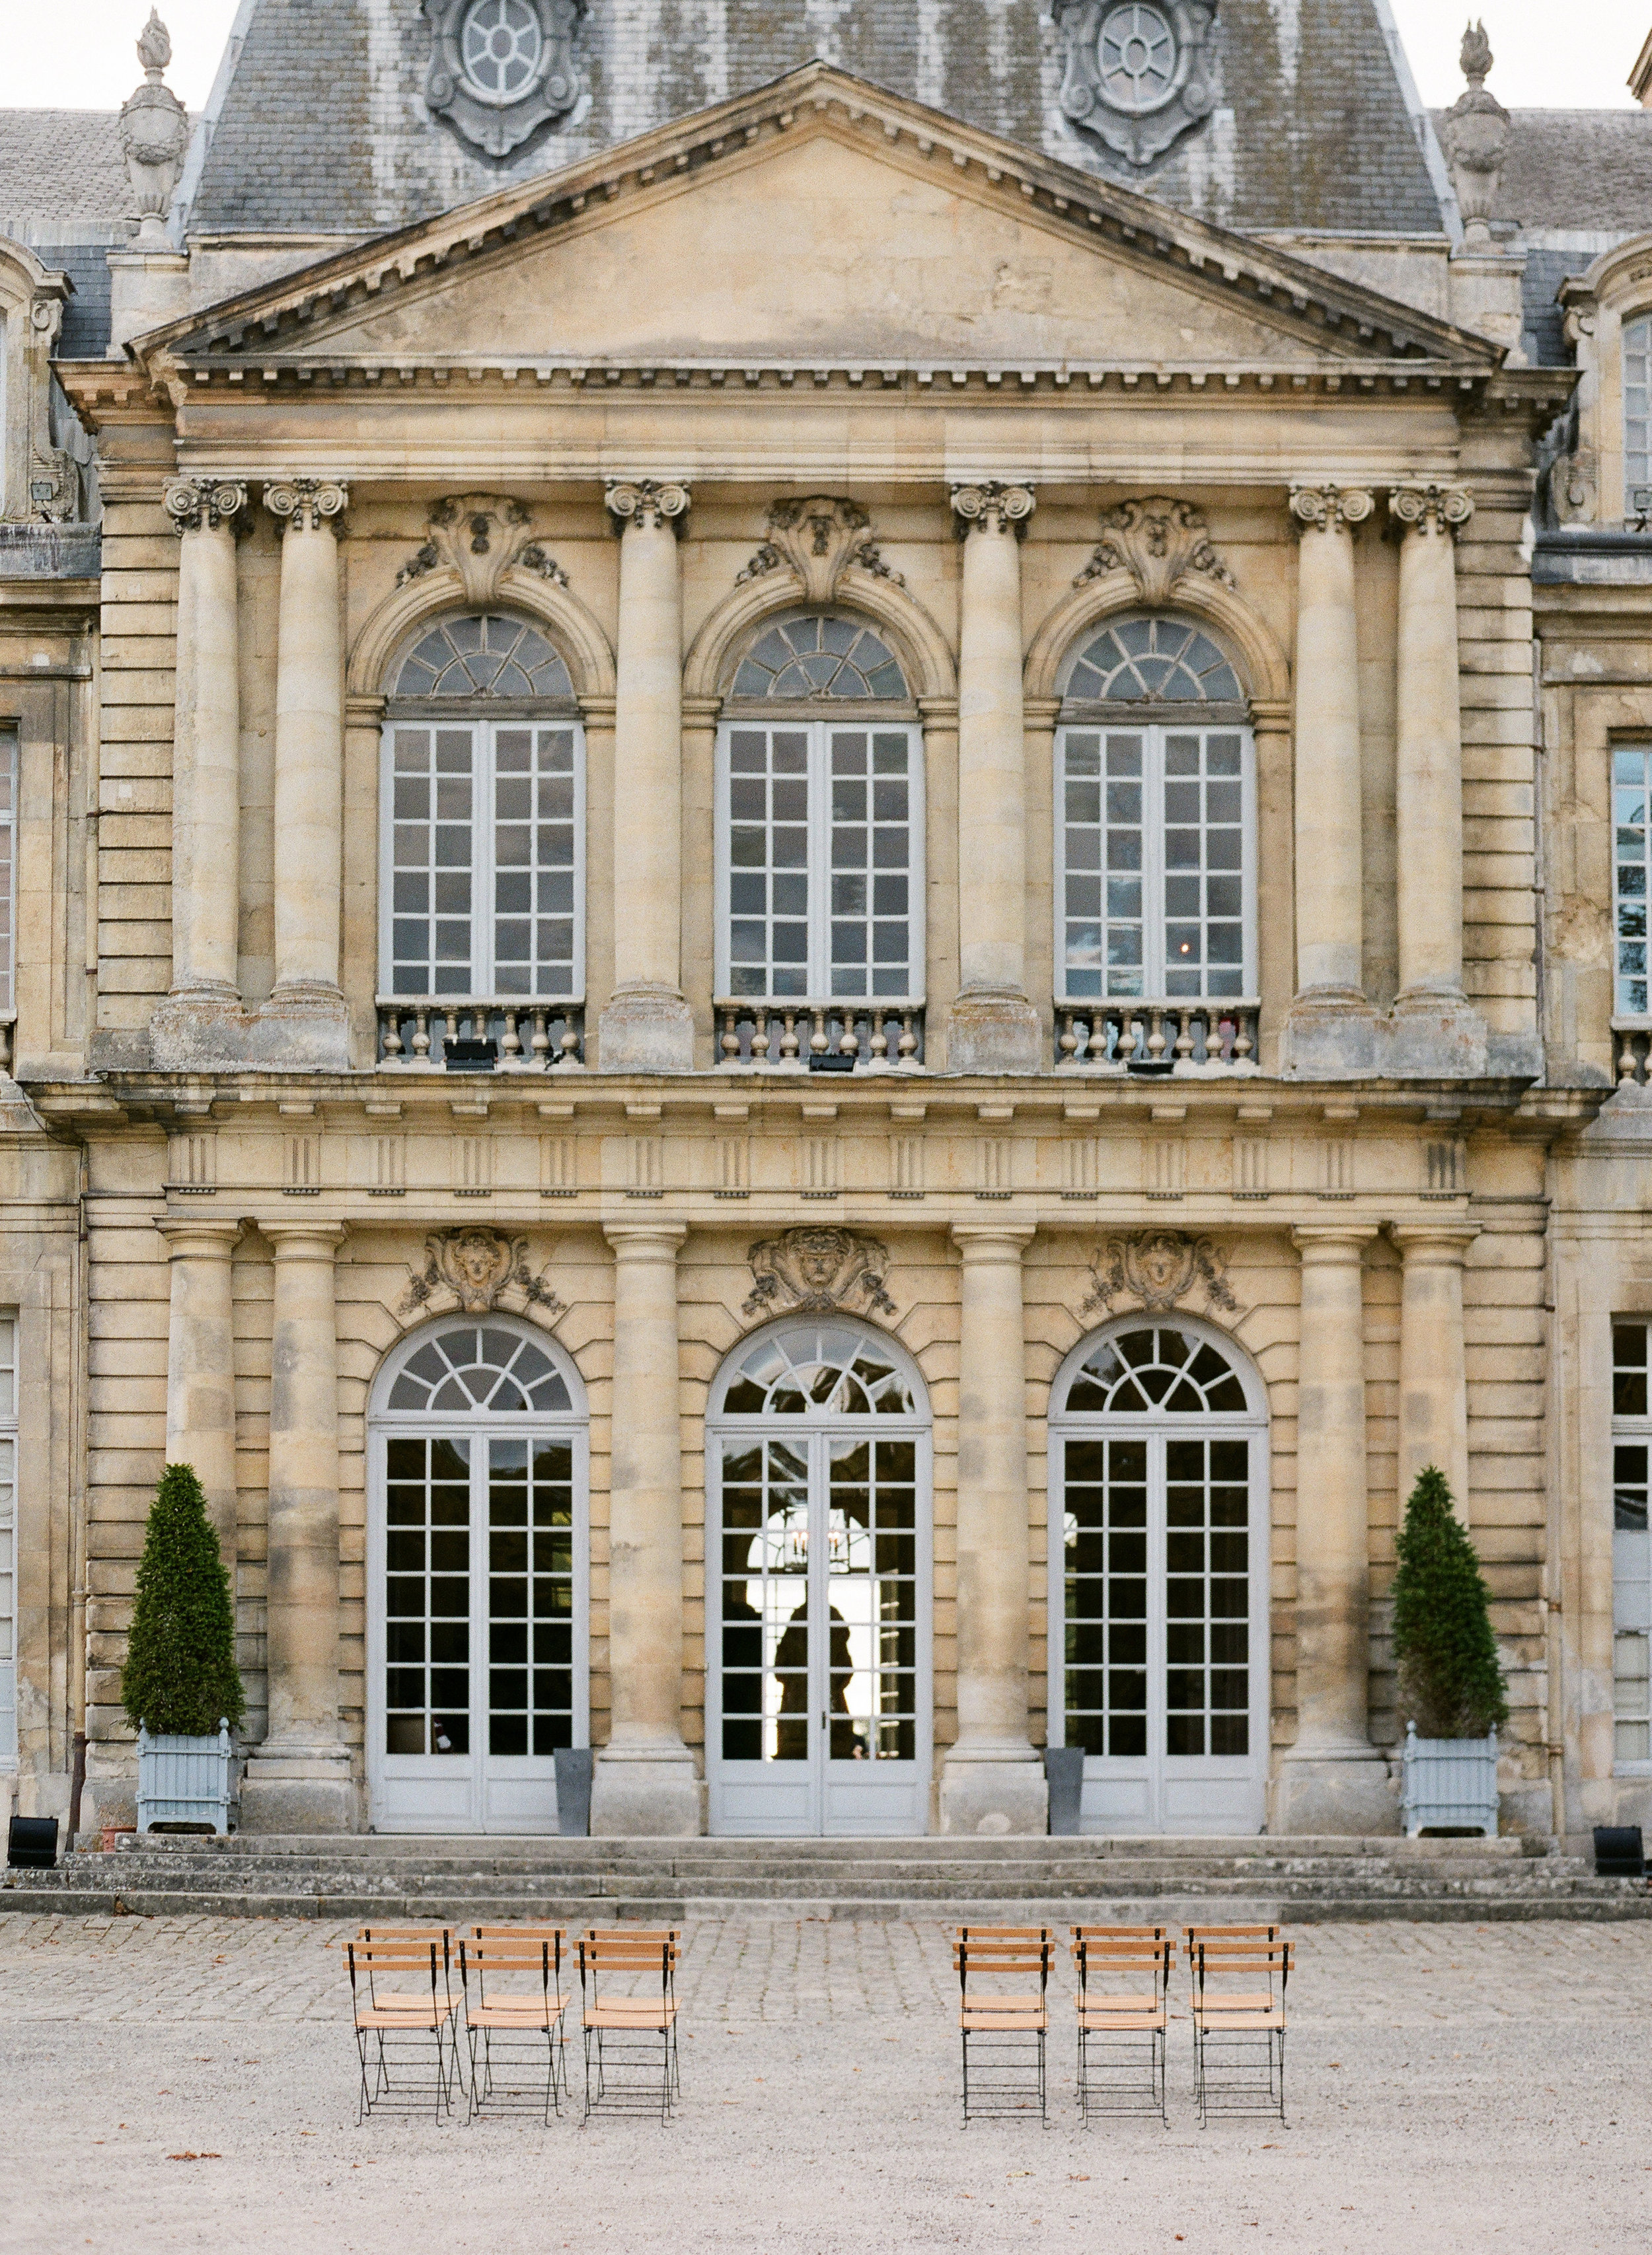 idyll-stories-france-chateau (16).jpg